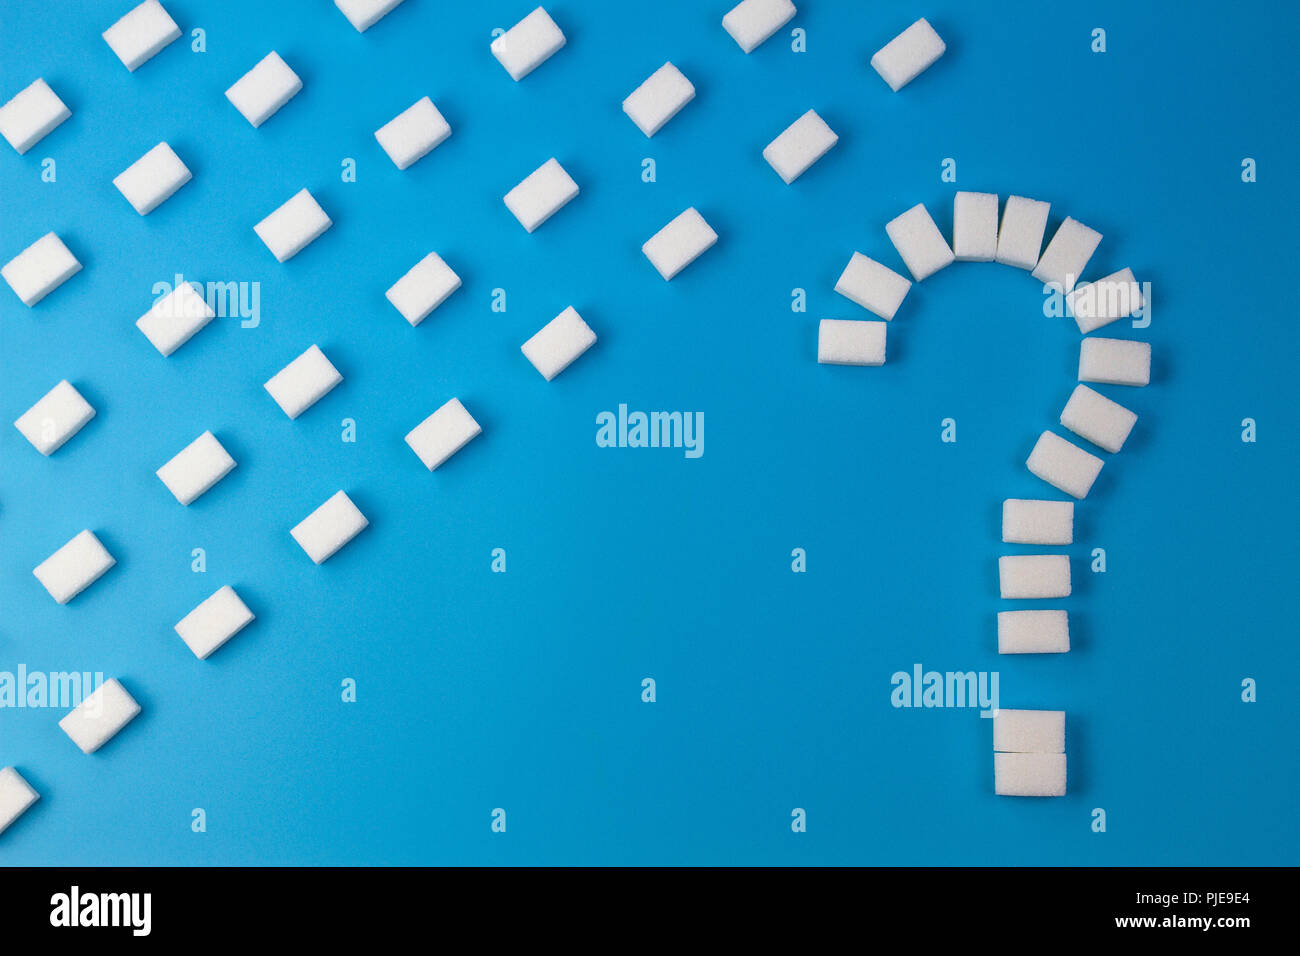 Sugar cubes shaped as a question mark sign on blue background. - Stock Image